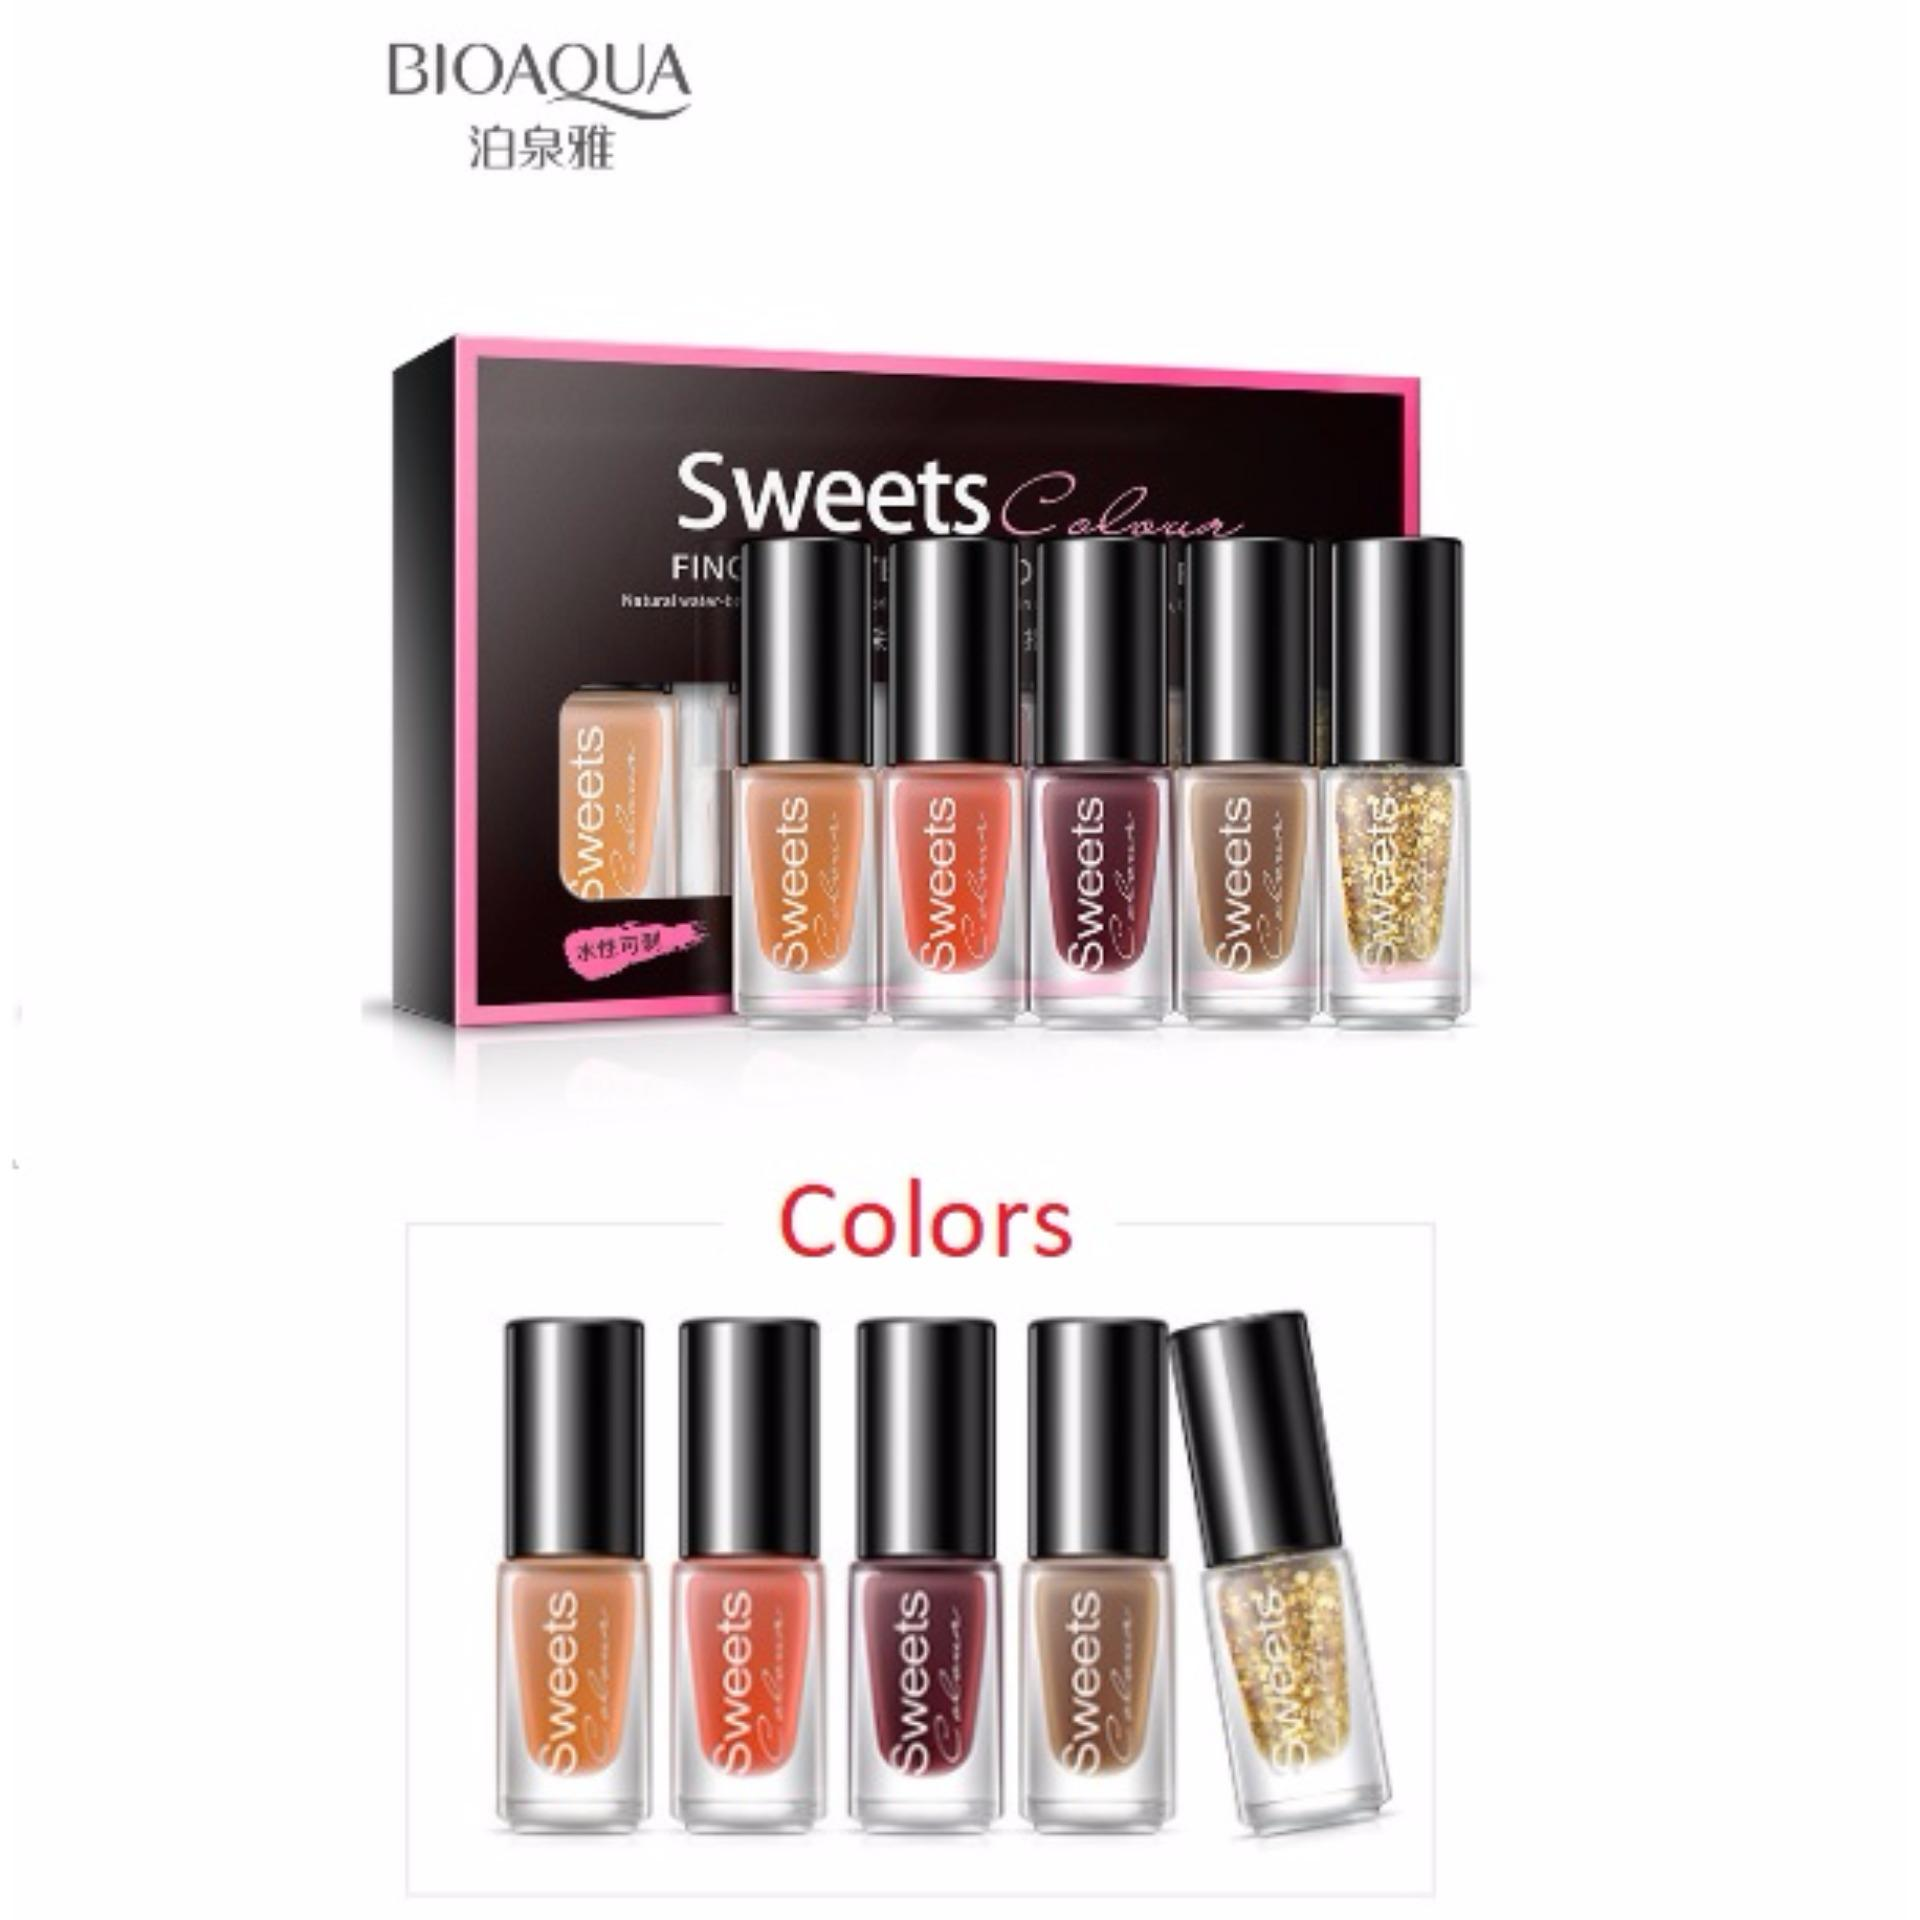 Bioaqua BQY7824-1 Color Water Can Be Stripped Nail Polish (Suit01 ...